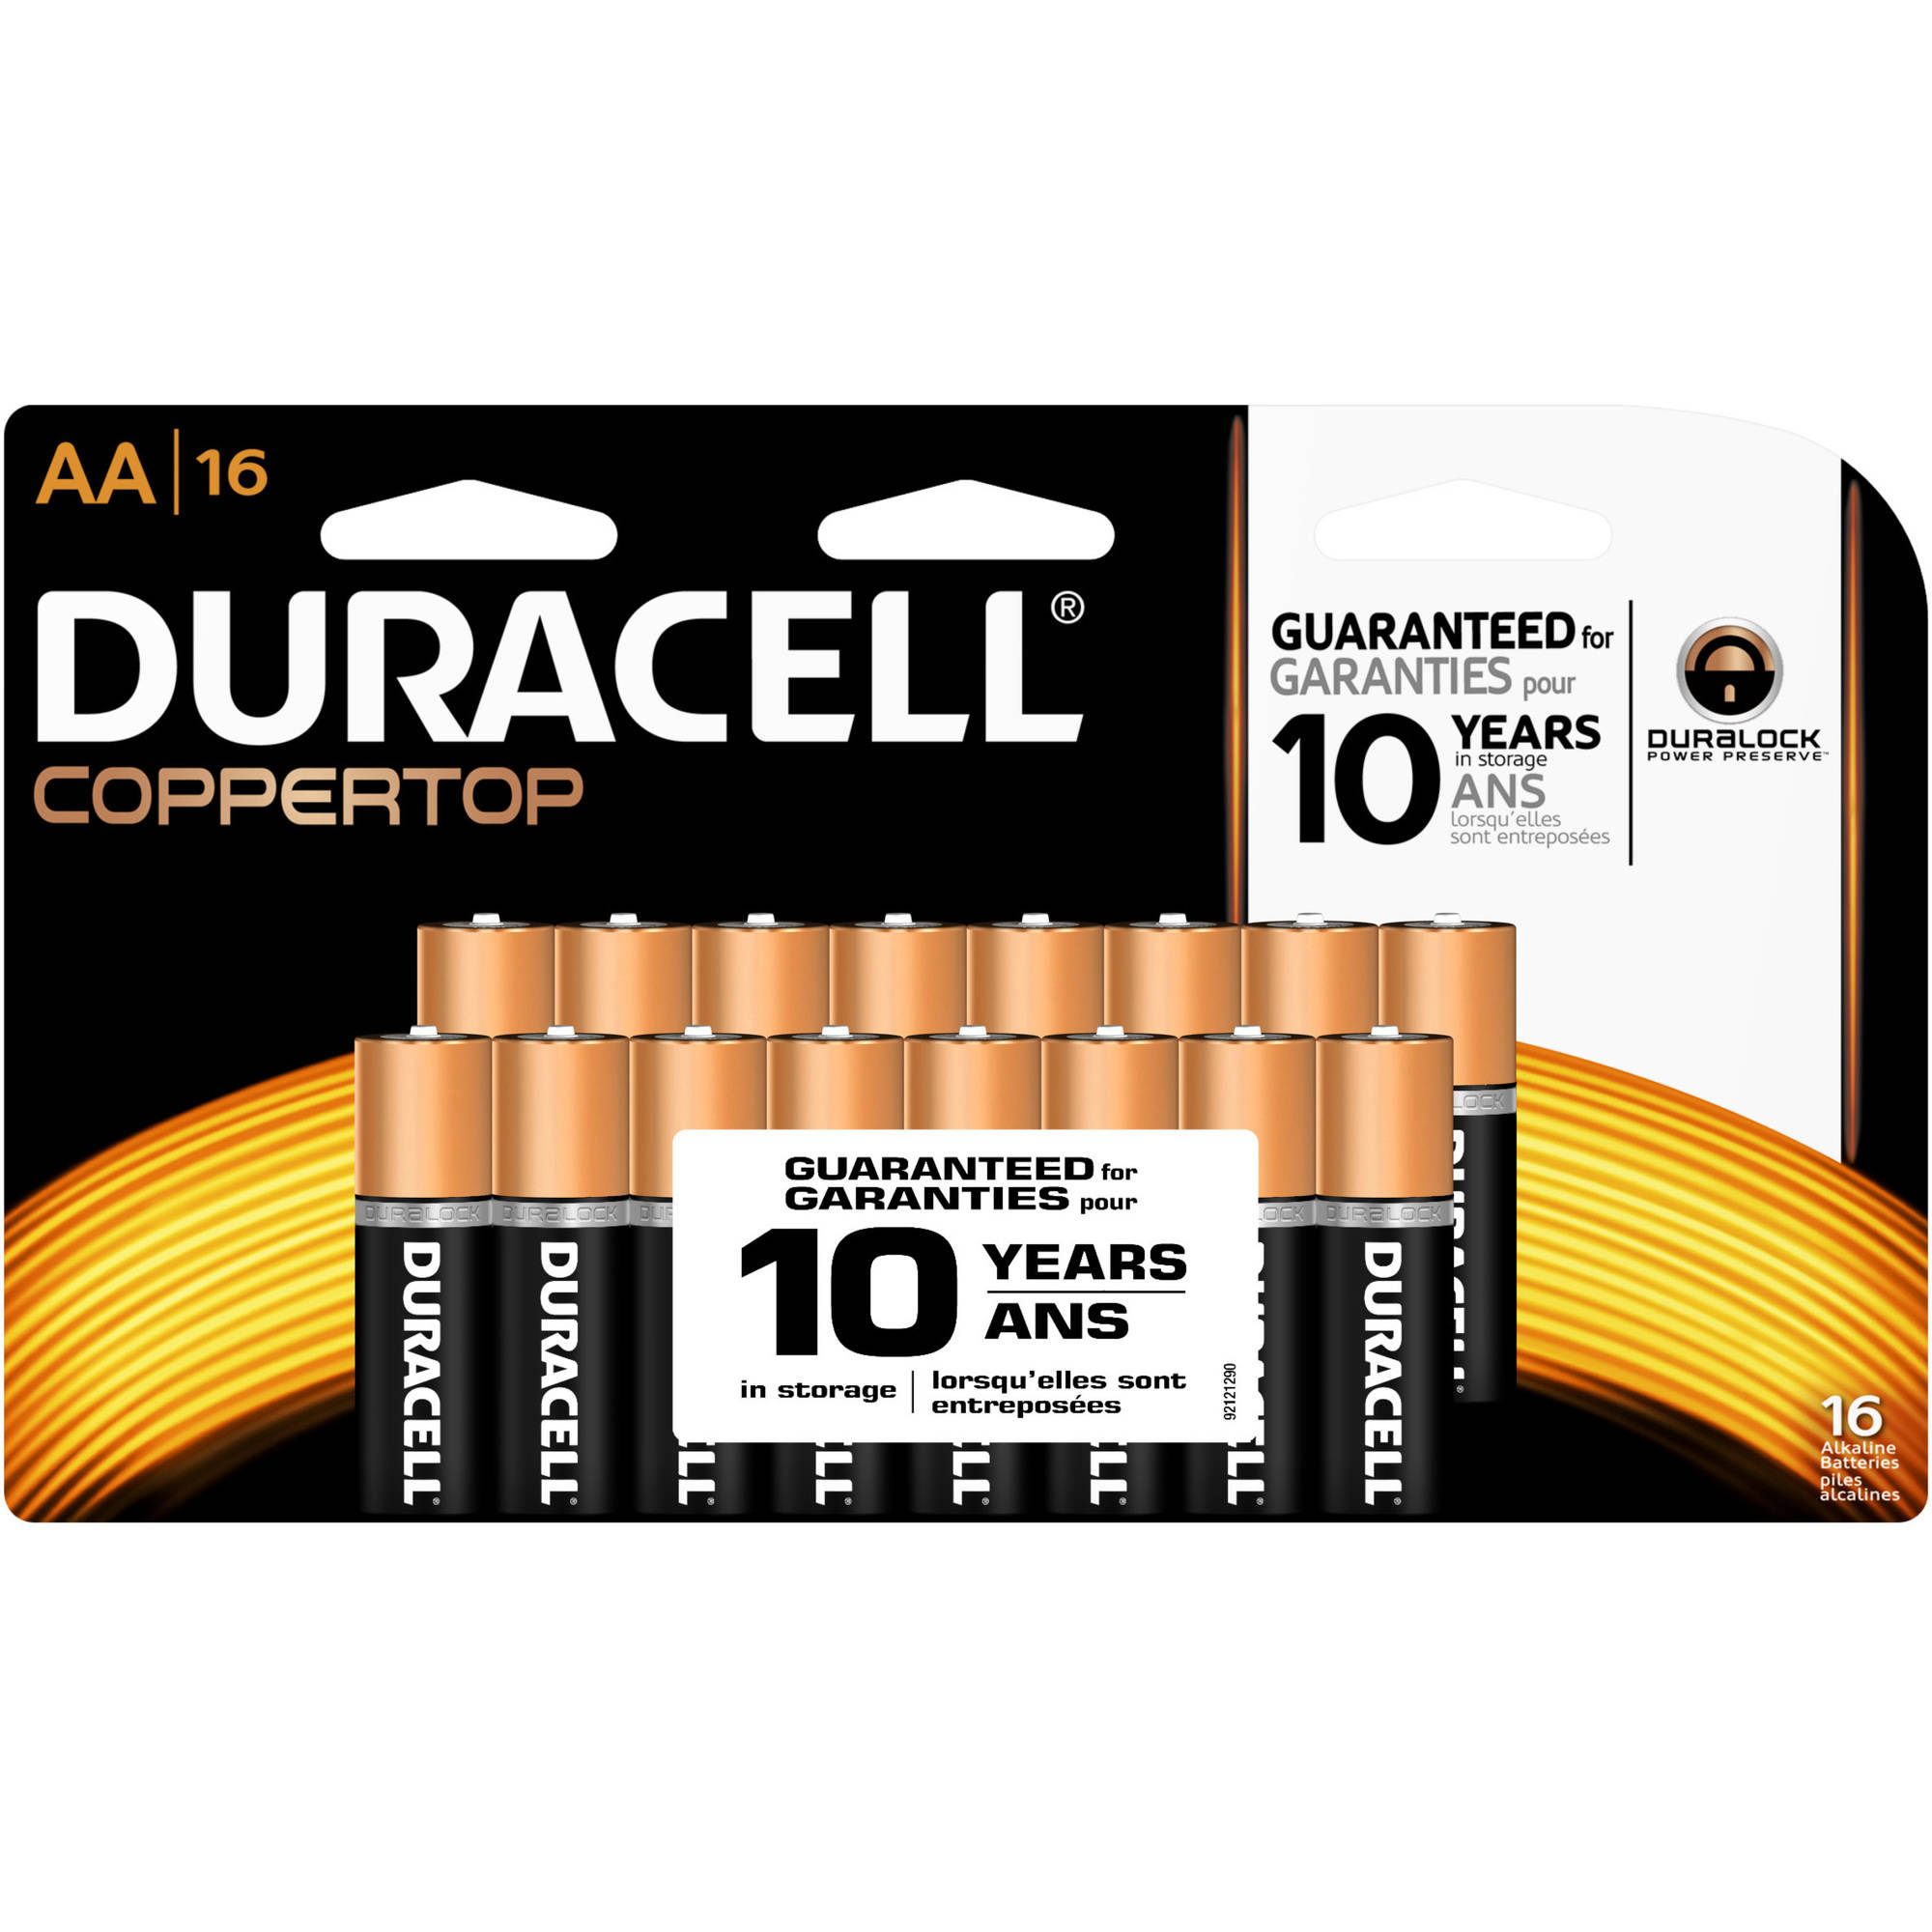 Duracell Coppertop AA Household Batteries Doublewide 16ct Pack